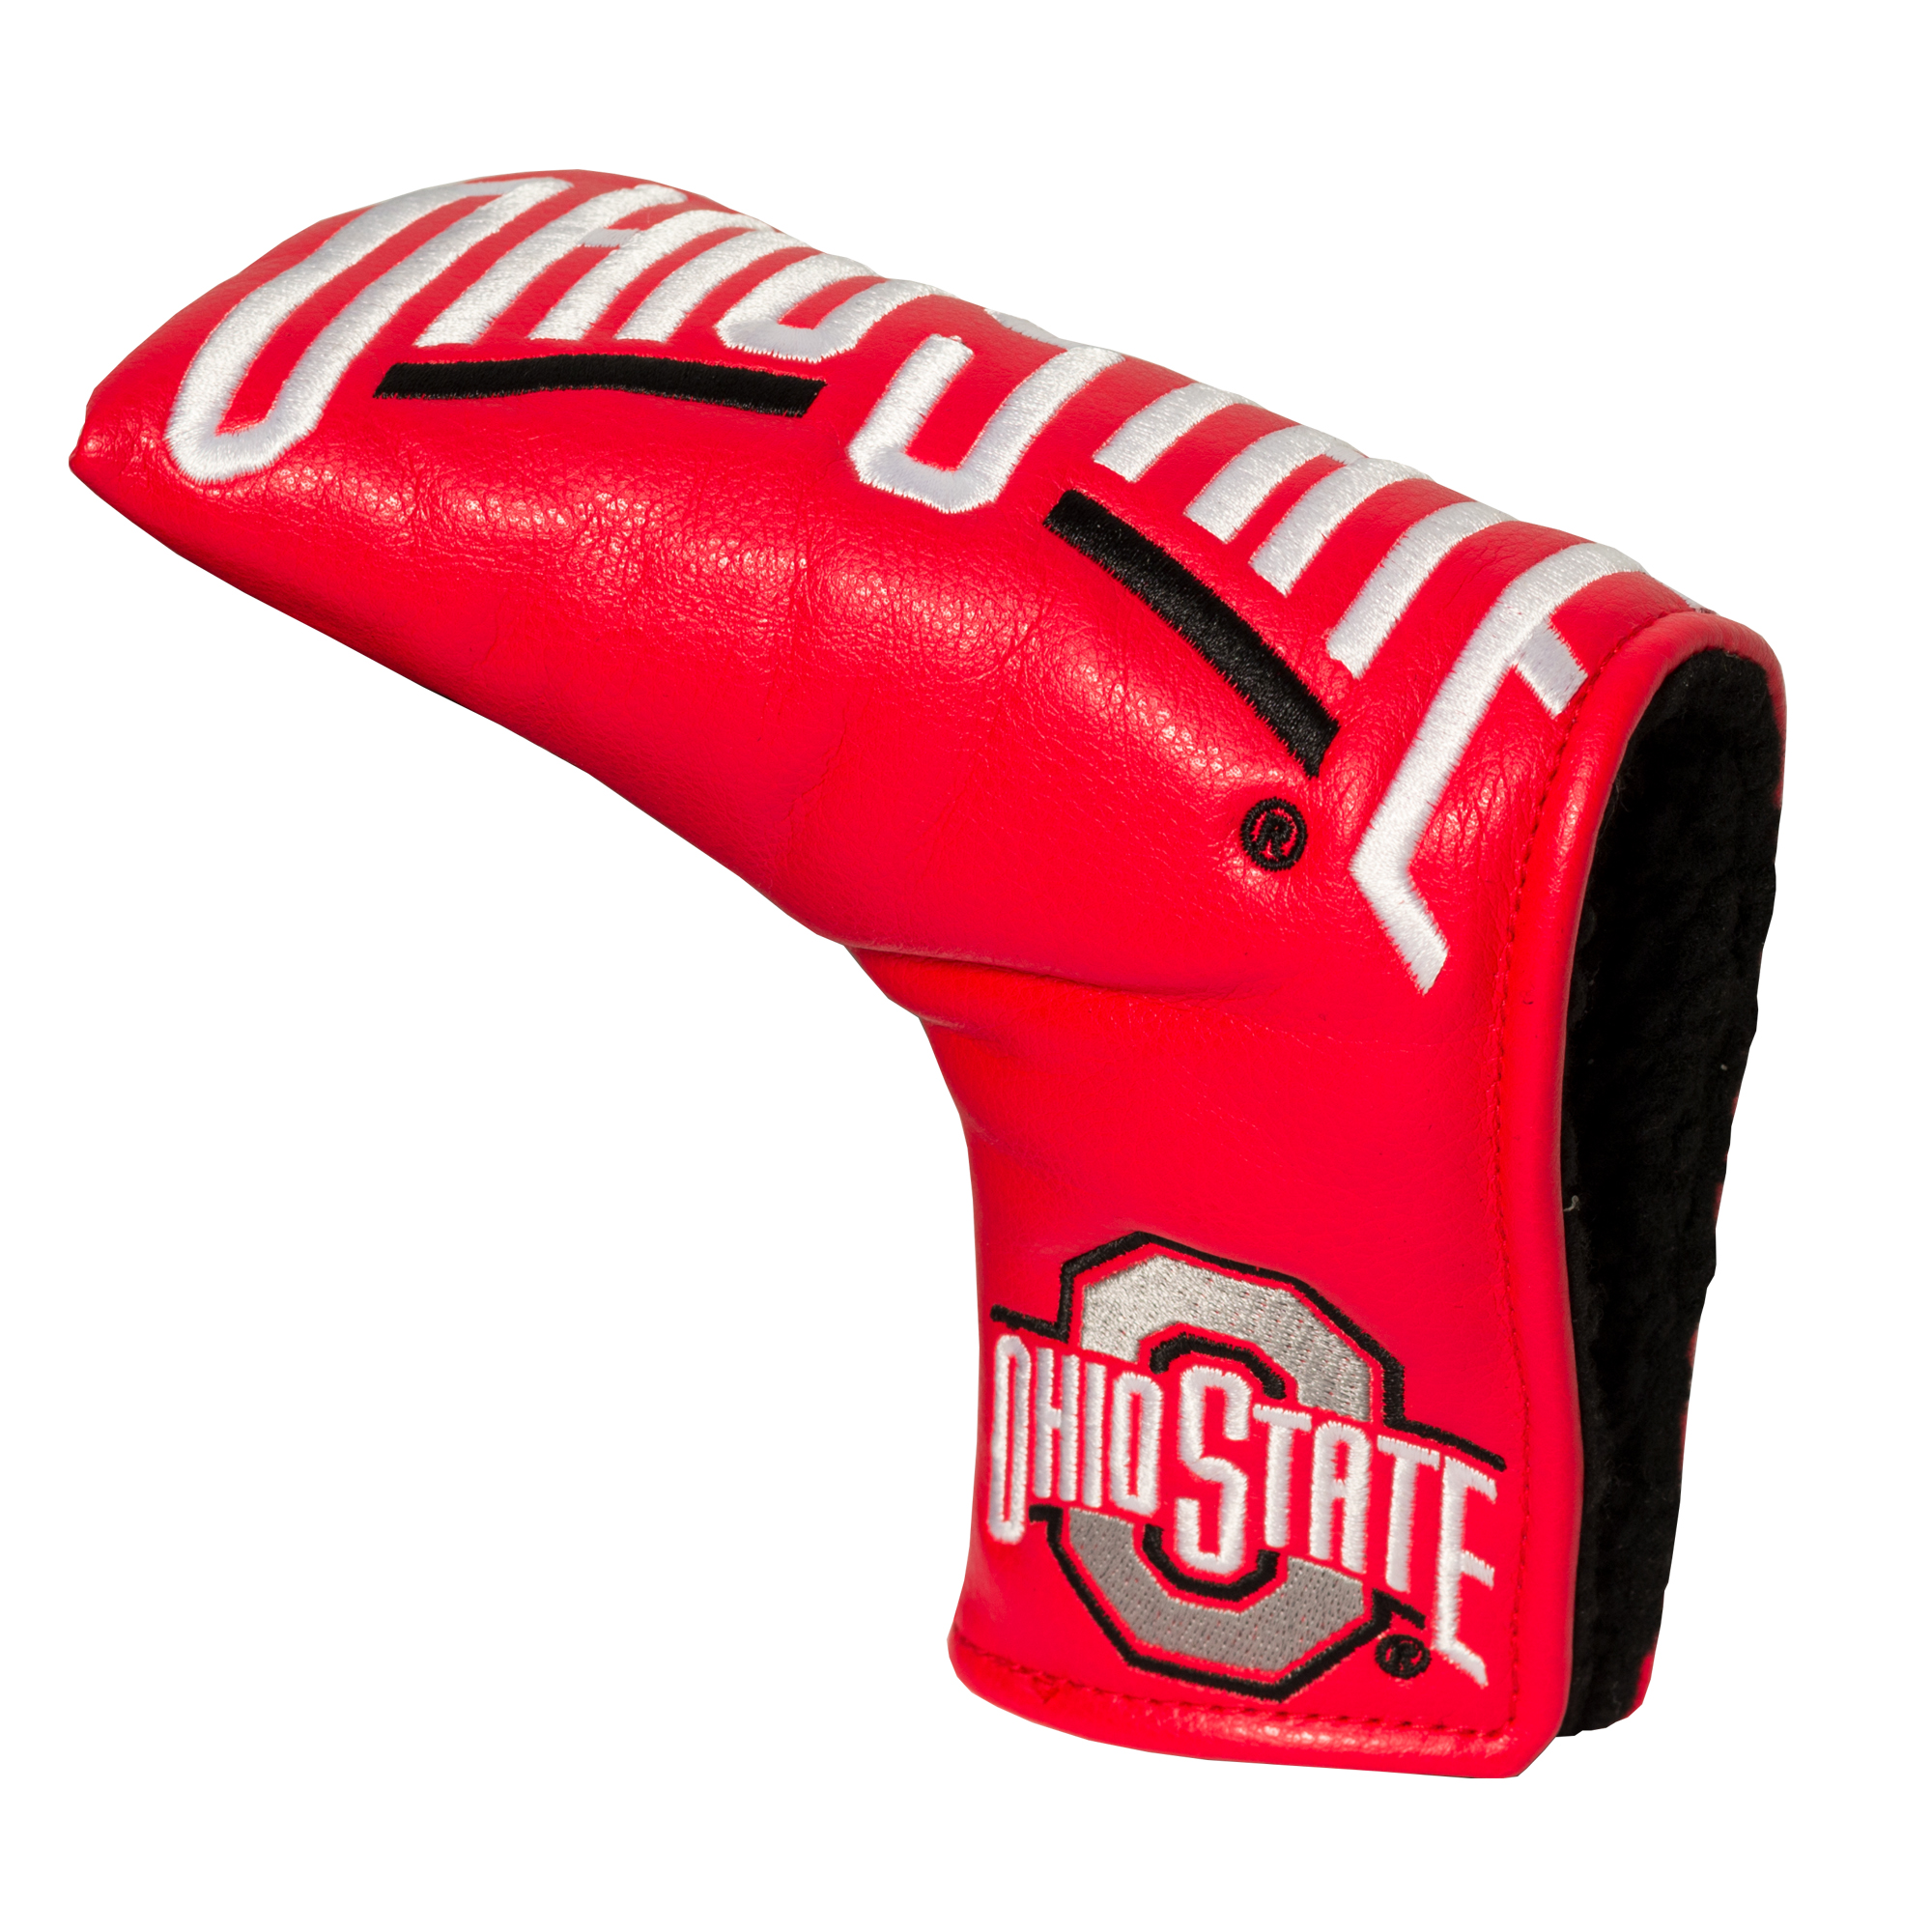 Ohio State Vintage Blade Putter Cover